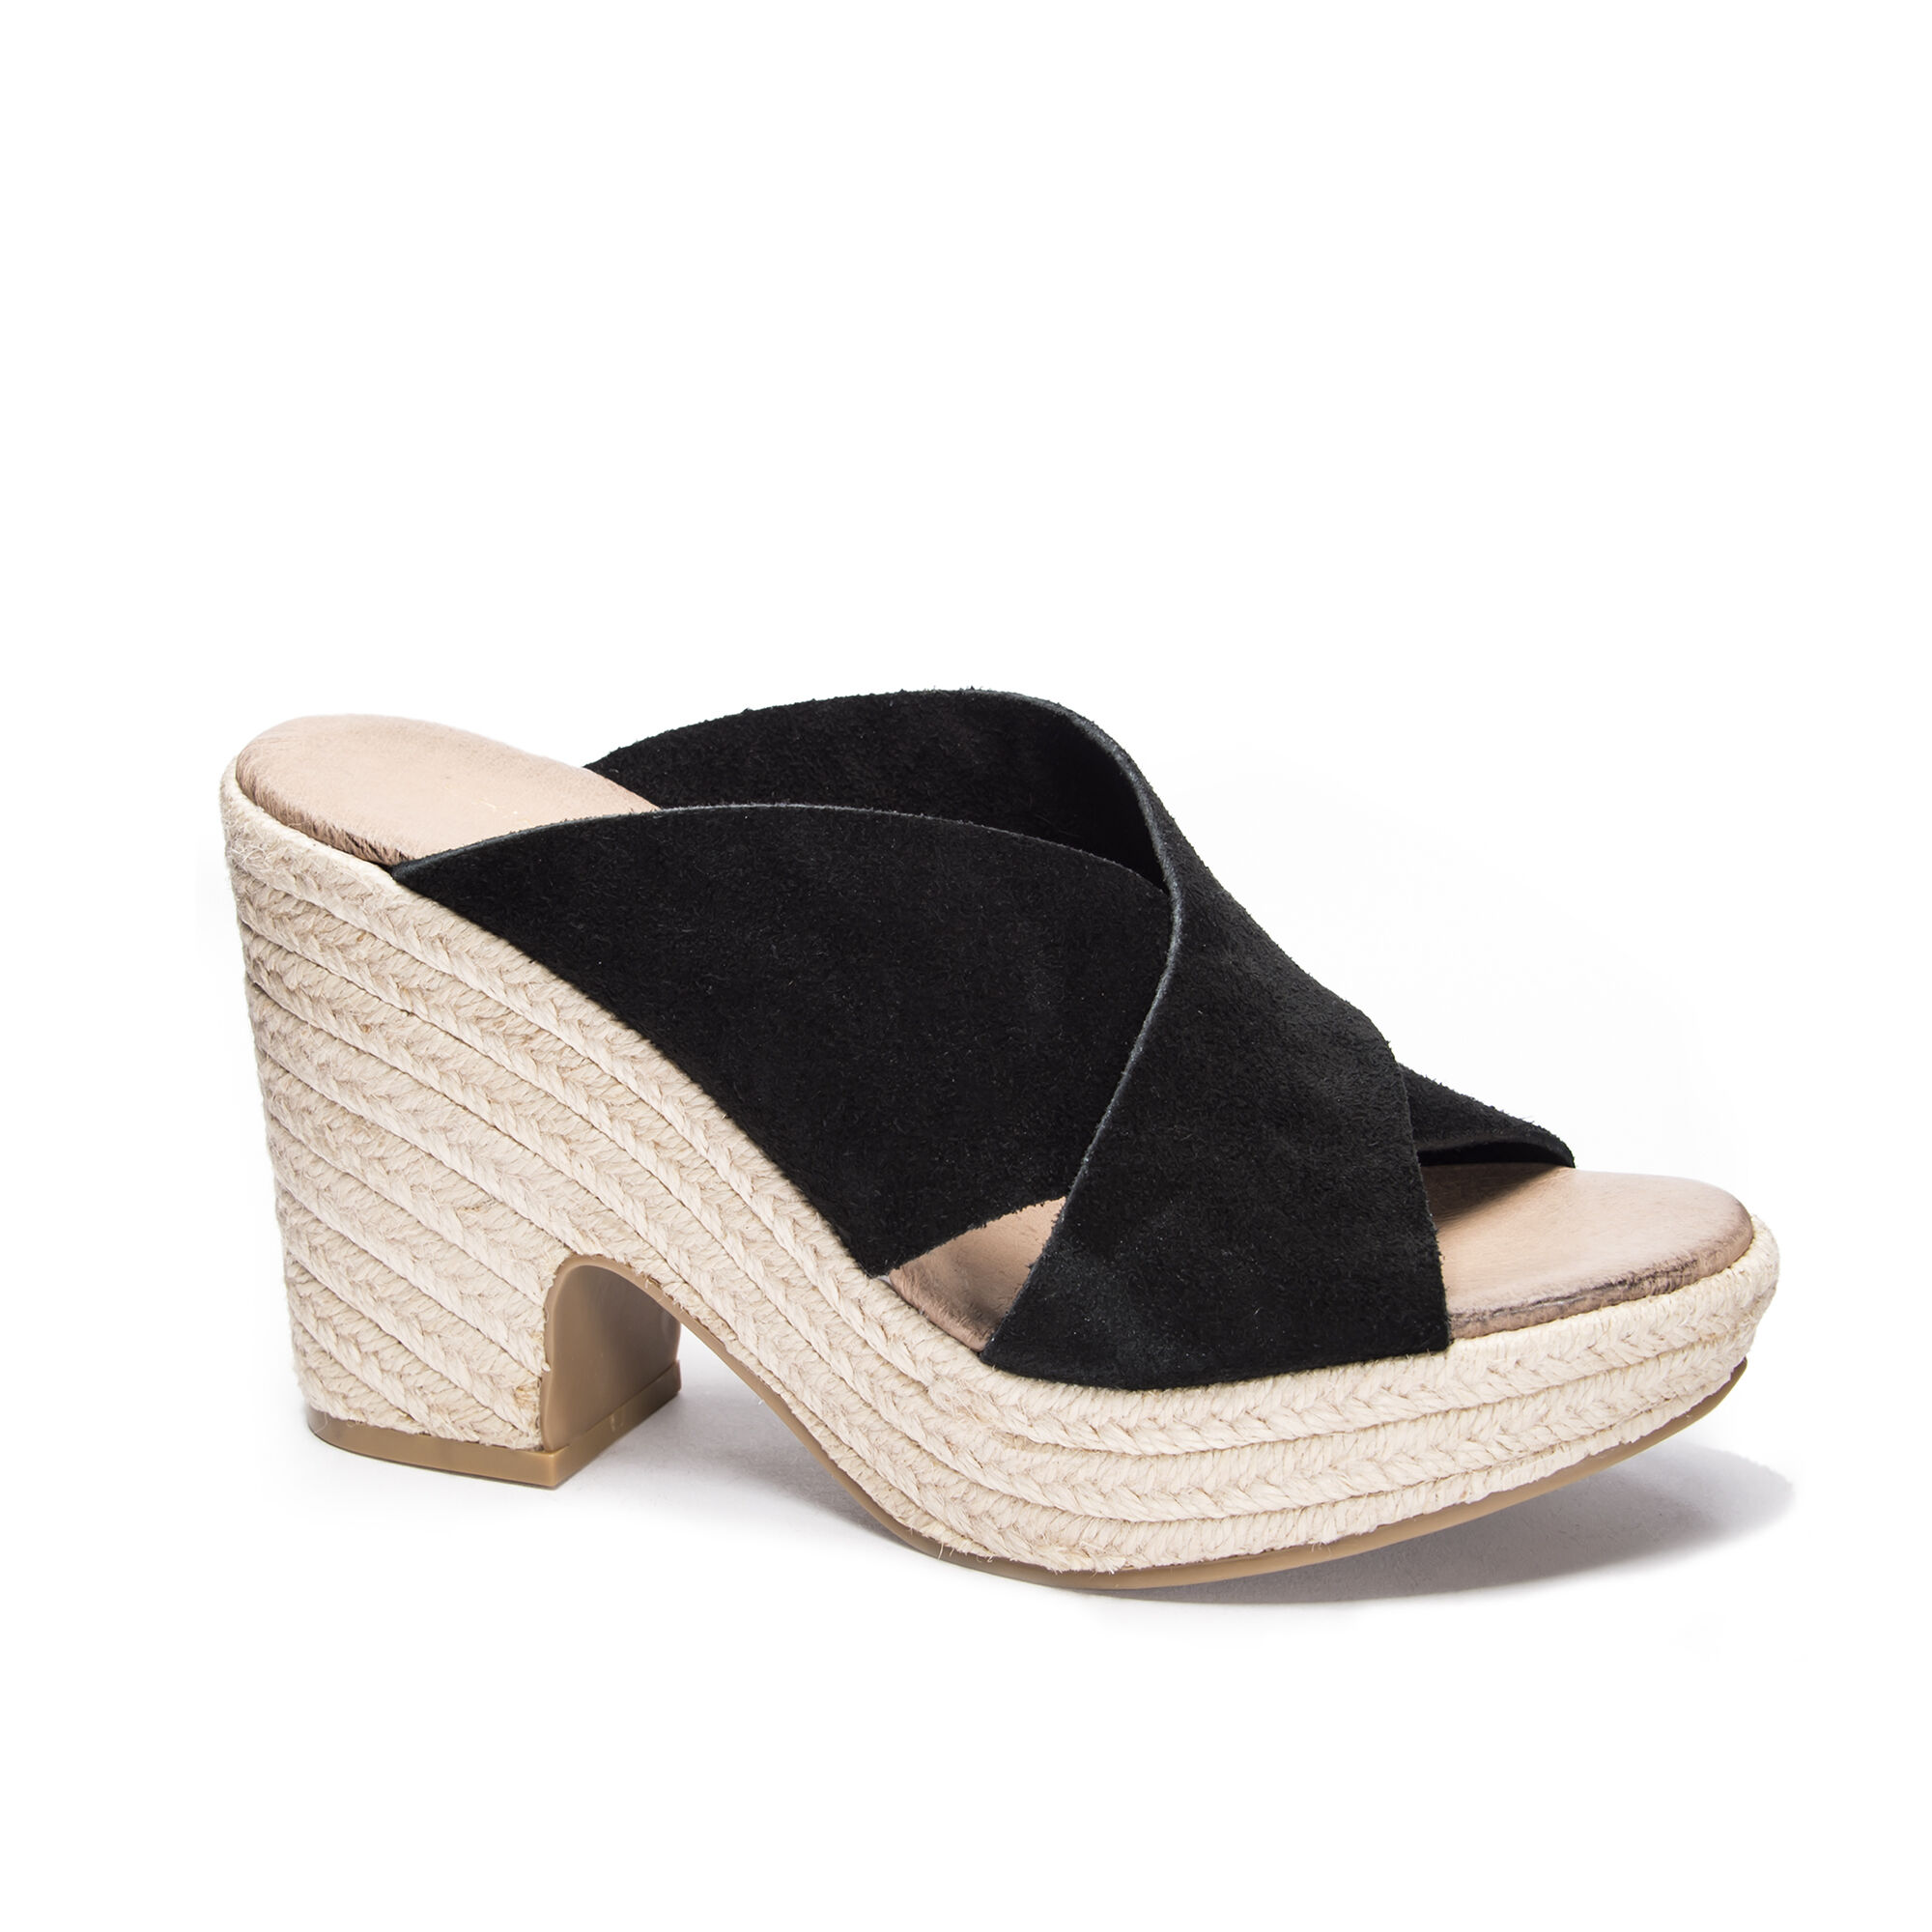 0aaa5e701e Chinese Laundry Quay Split Suede Wedge Sandal | Chinese Laundry